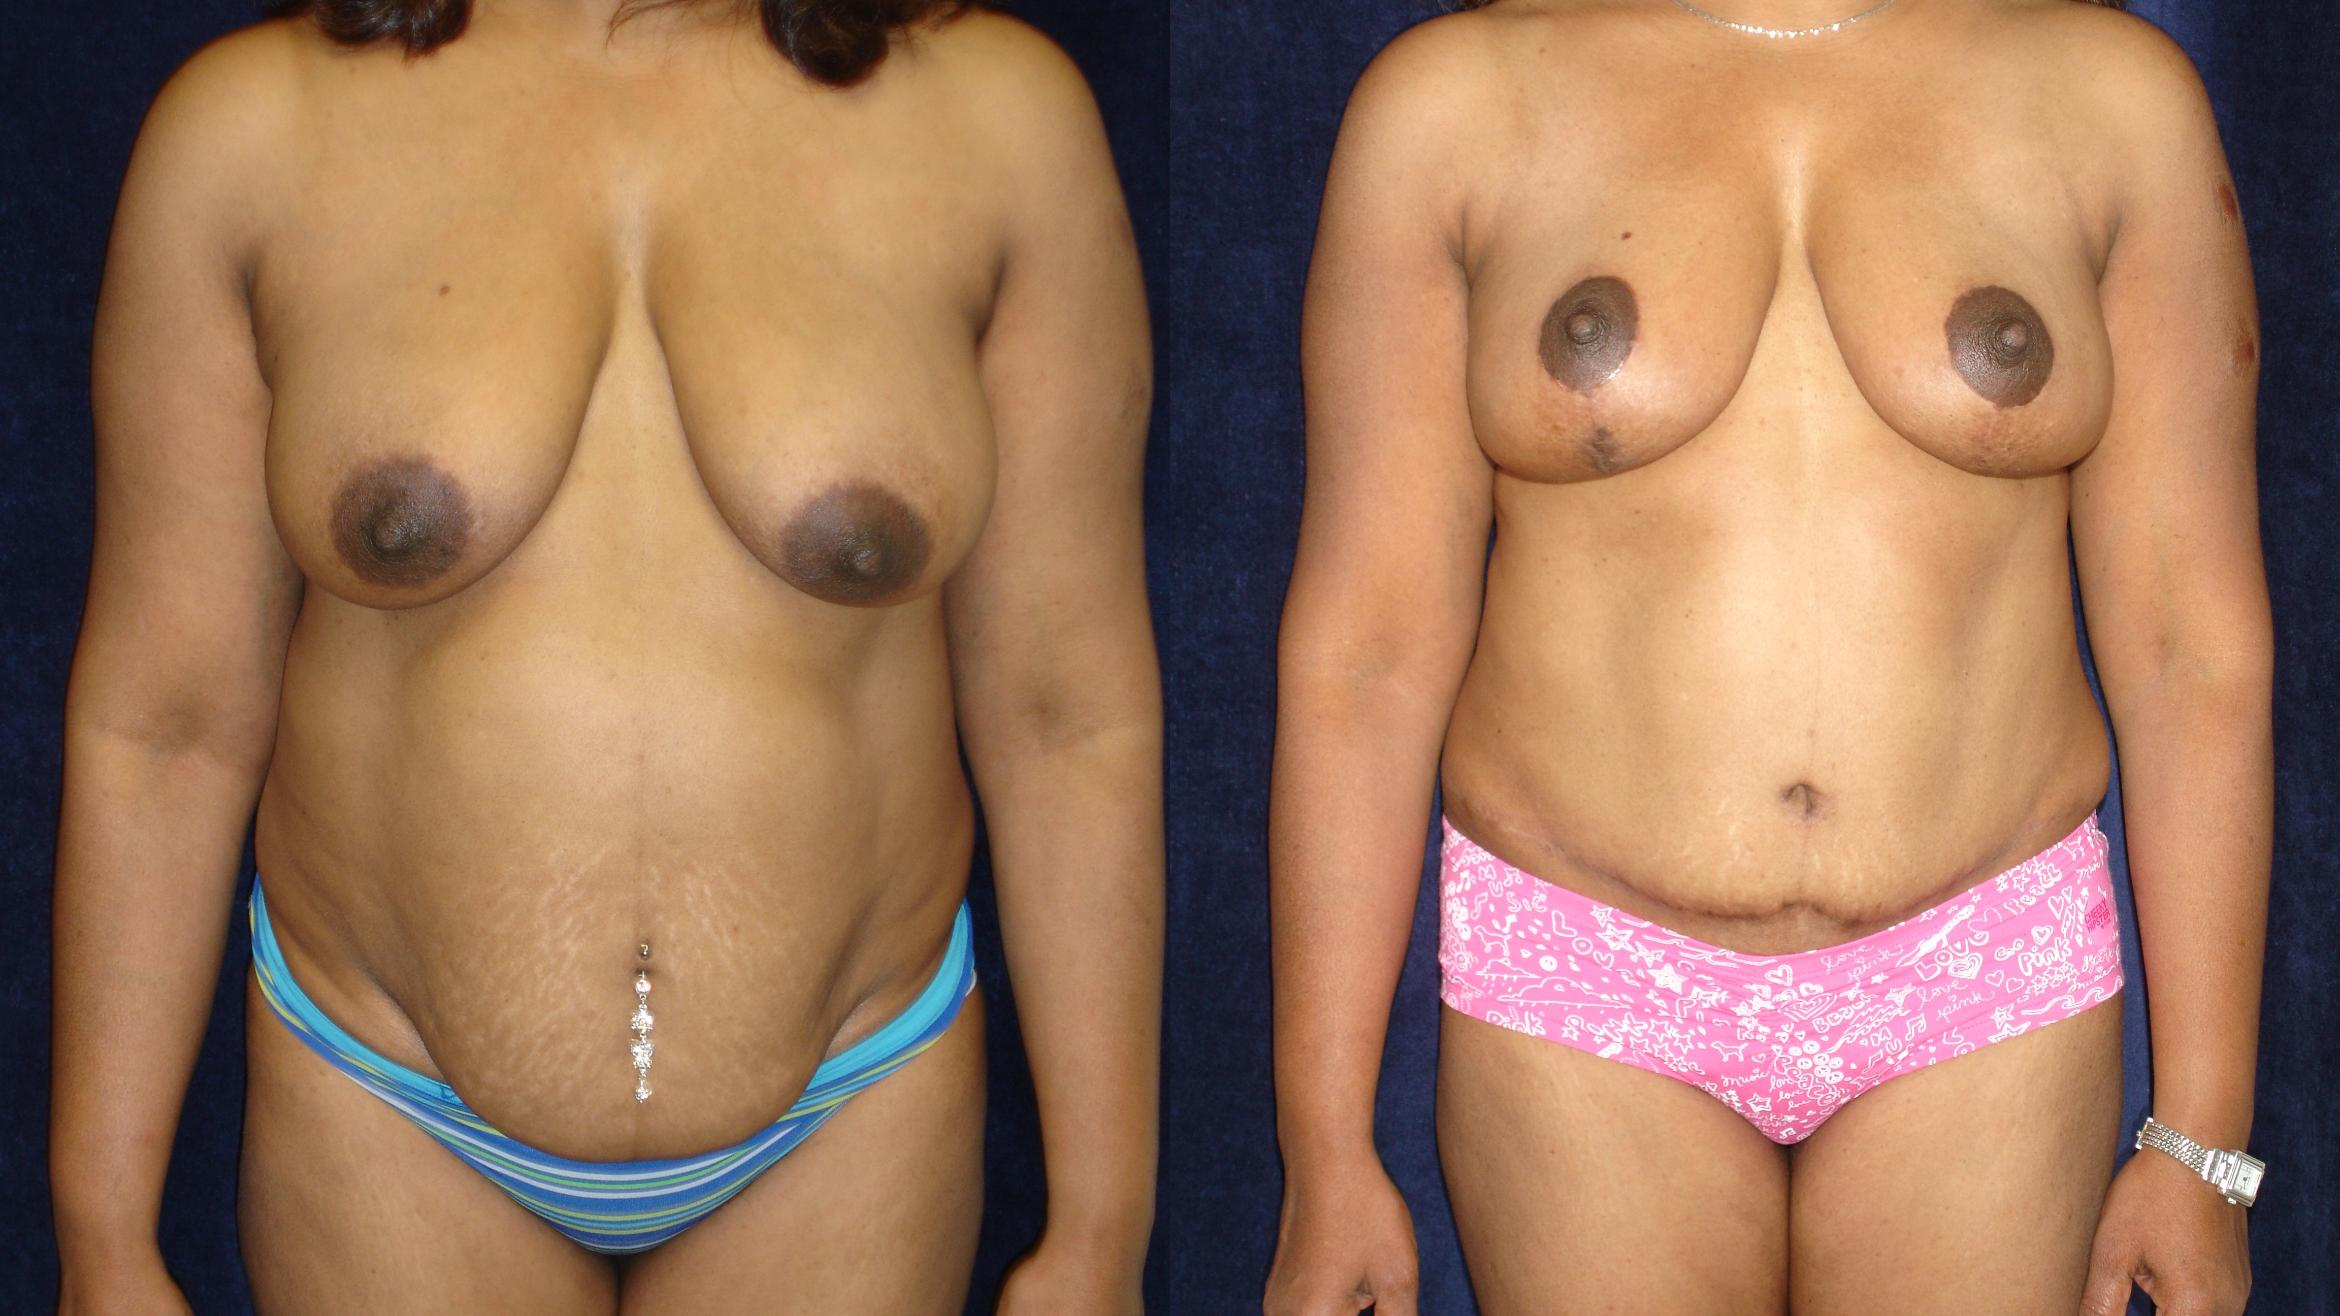 Breast Lift Before & After Photo | San Francisco, CA | Kaiser Permanente Cosmetic Services